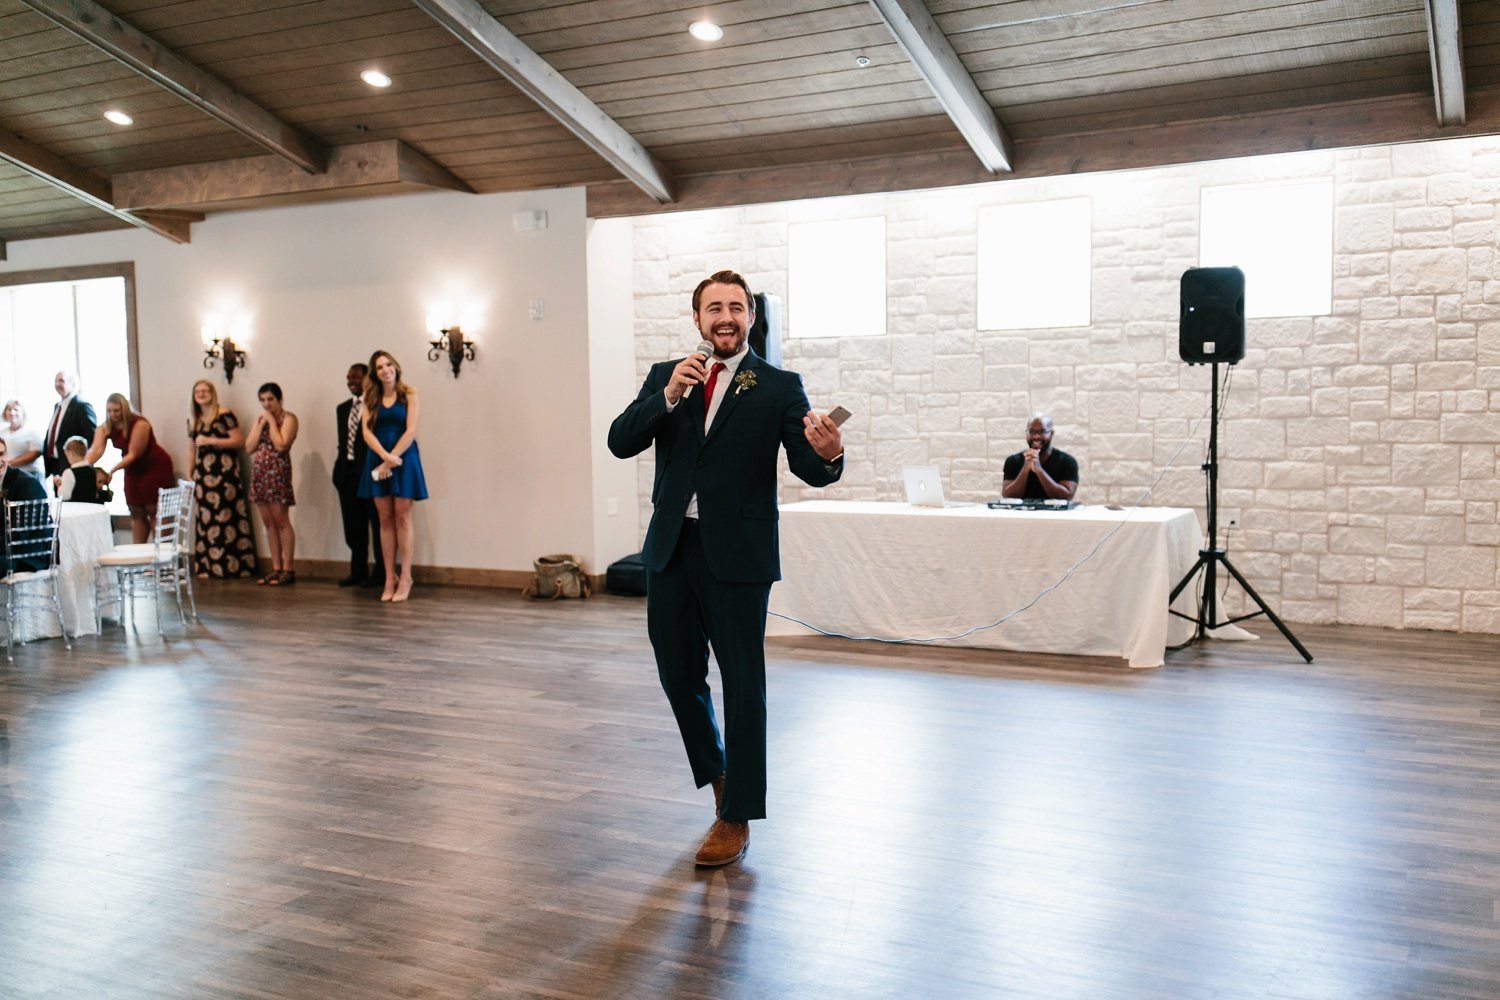 Grant + Lysette | a vibrant, deep burgundy and navy, and mixed metals wedding at Hidden Pines Chapel by North Texas Wedding Photographer Rachel Meagan Photography 148